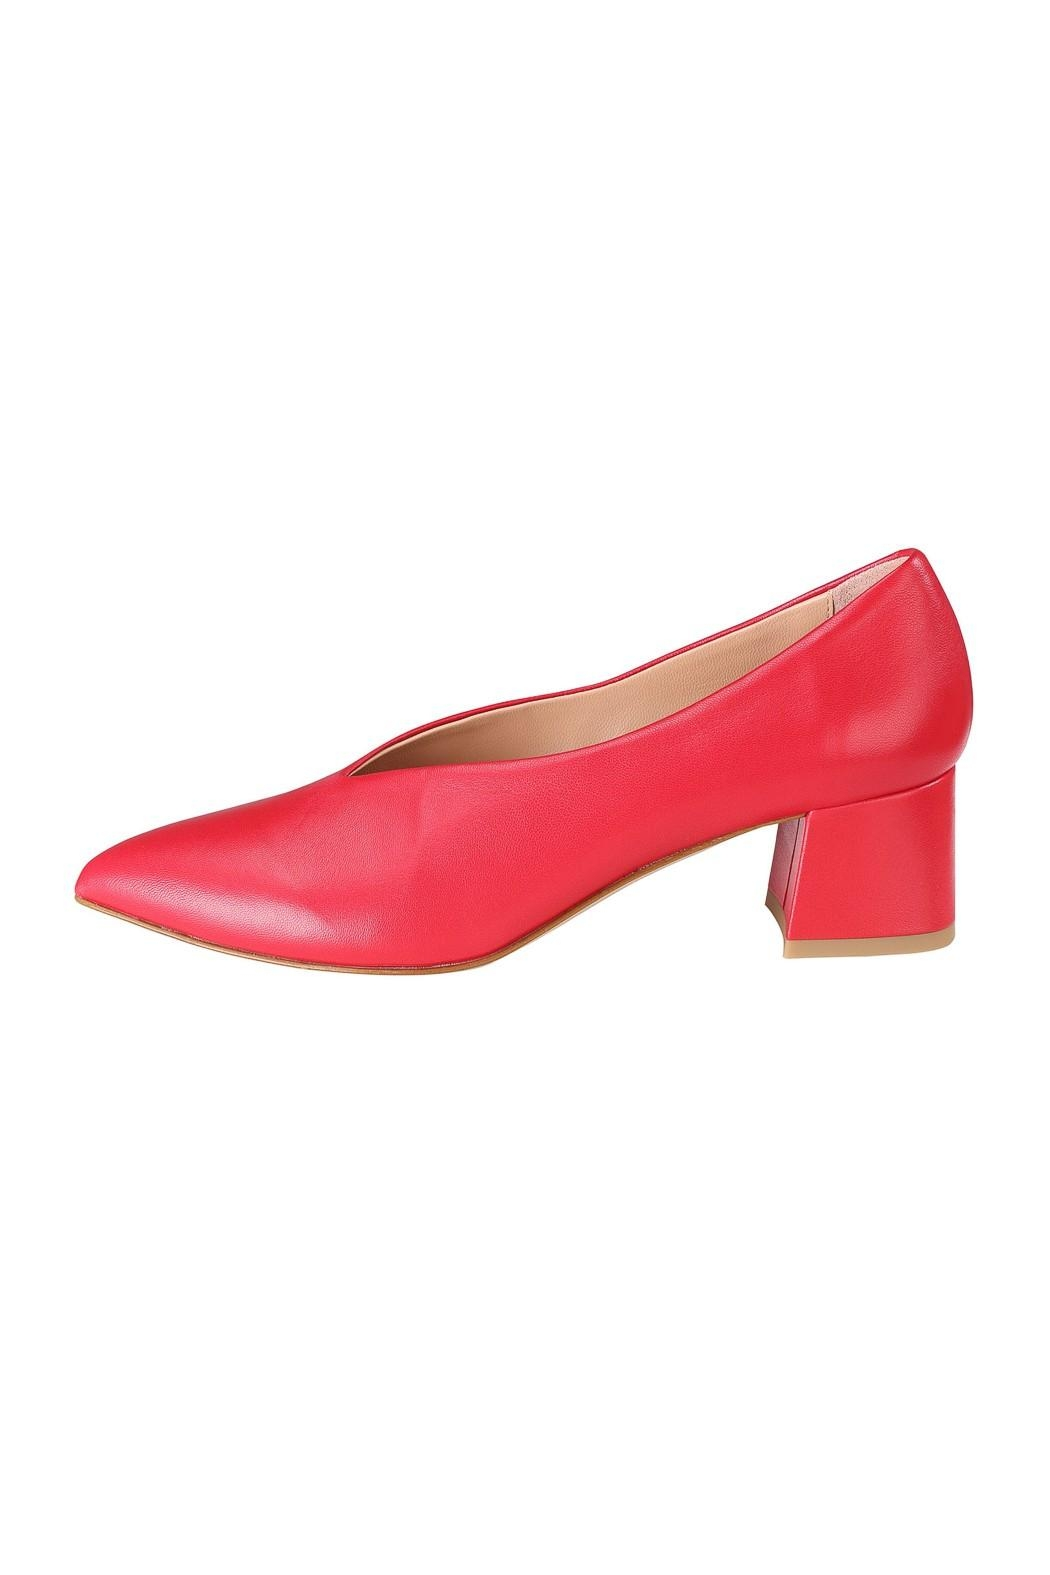 Pascucci Red Leather Pumps - Main Image